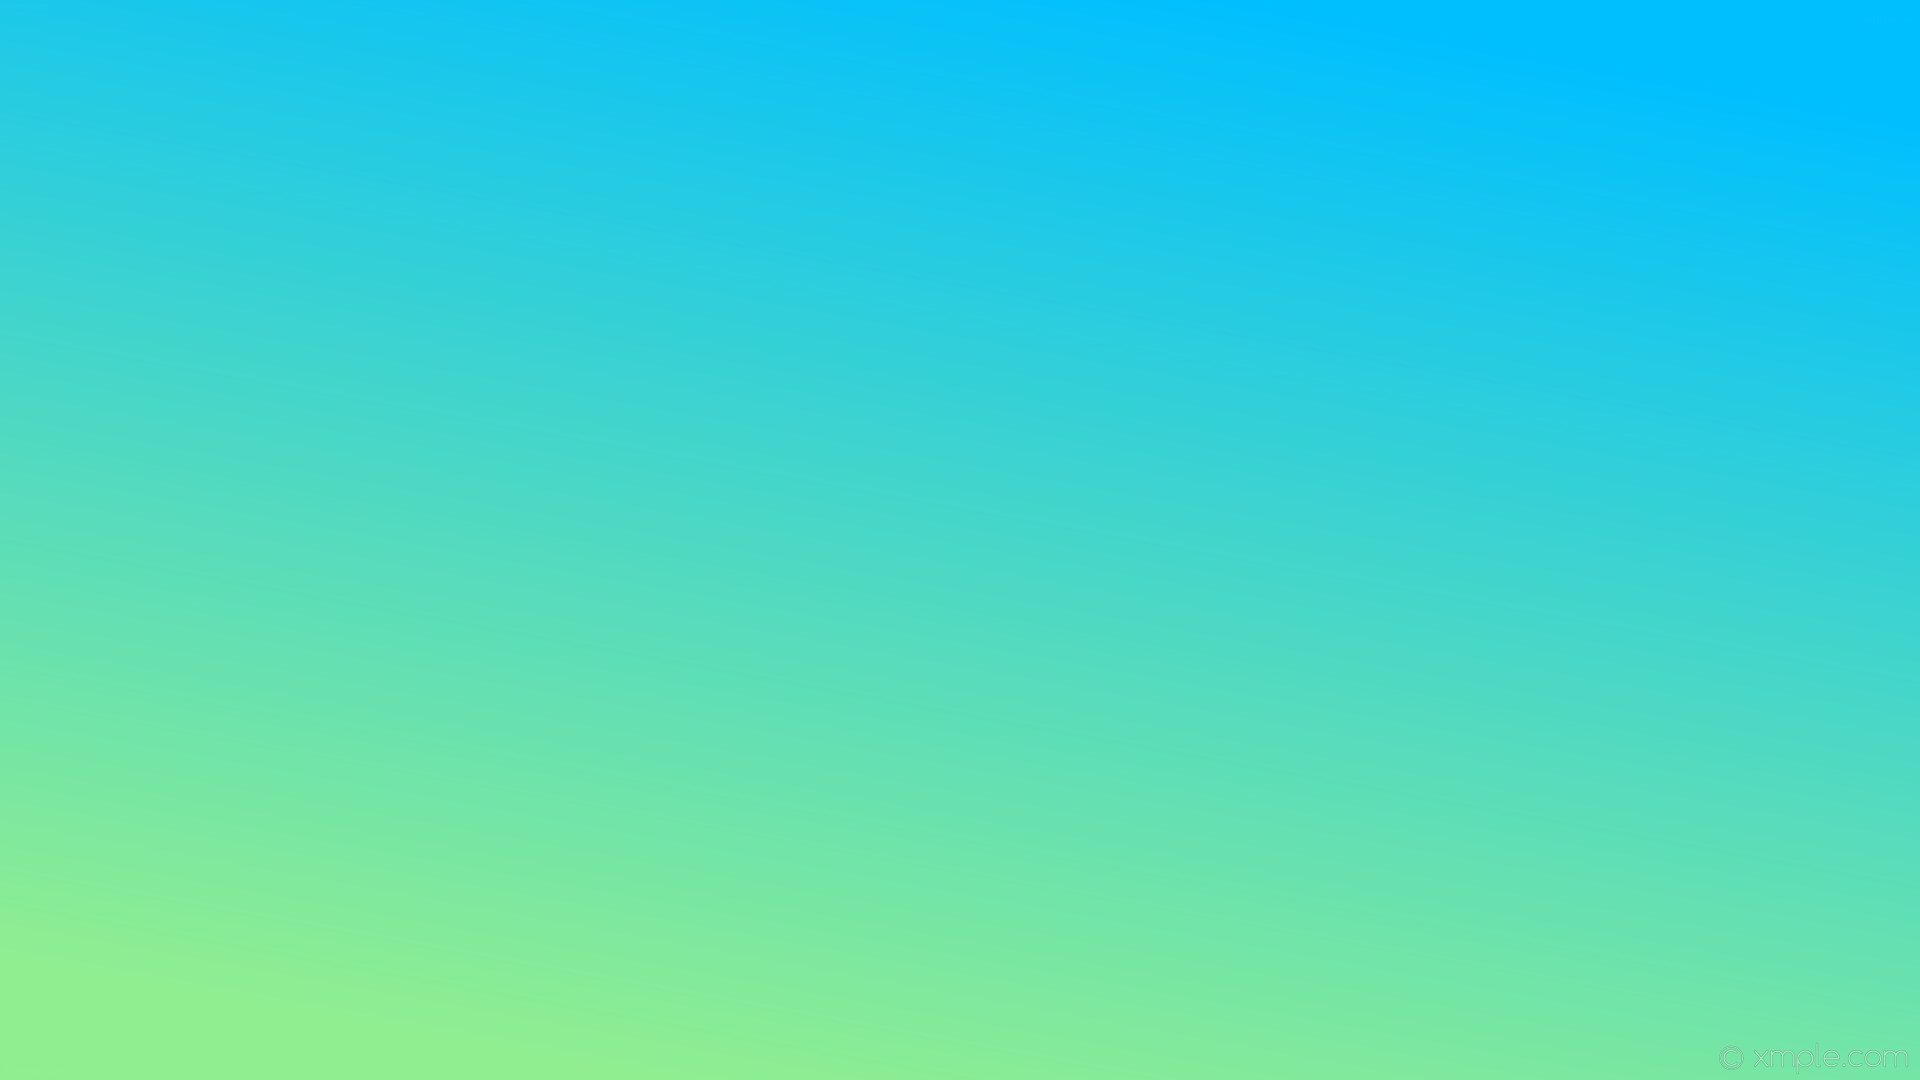 Teal Green Wallpapers Group (59 )